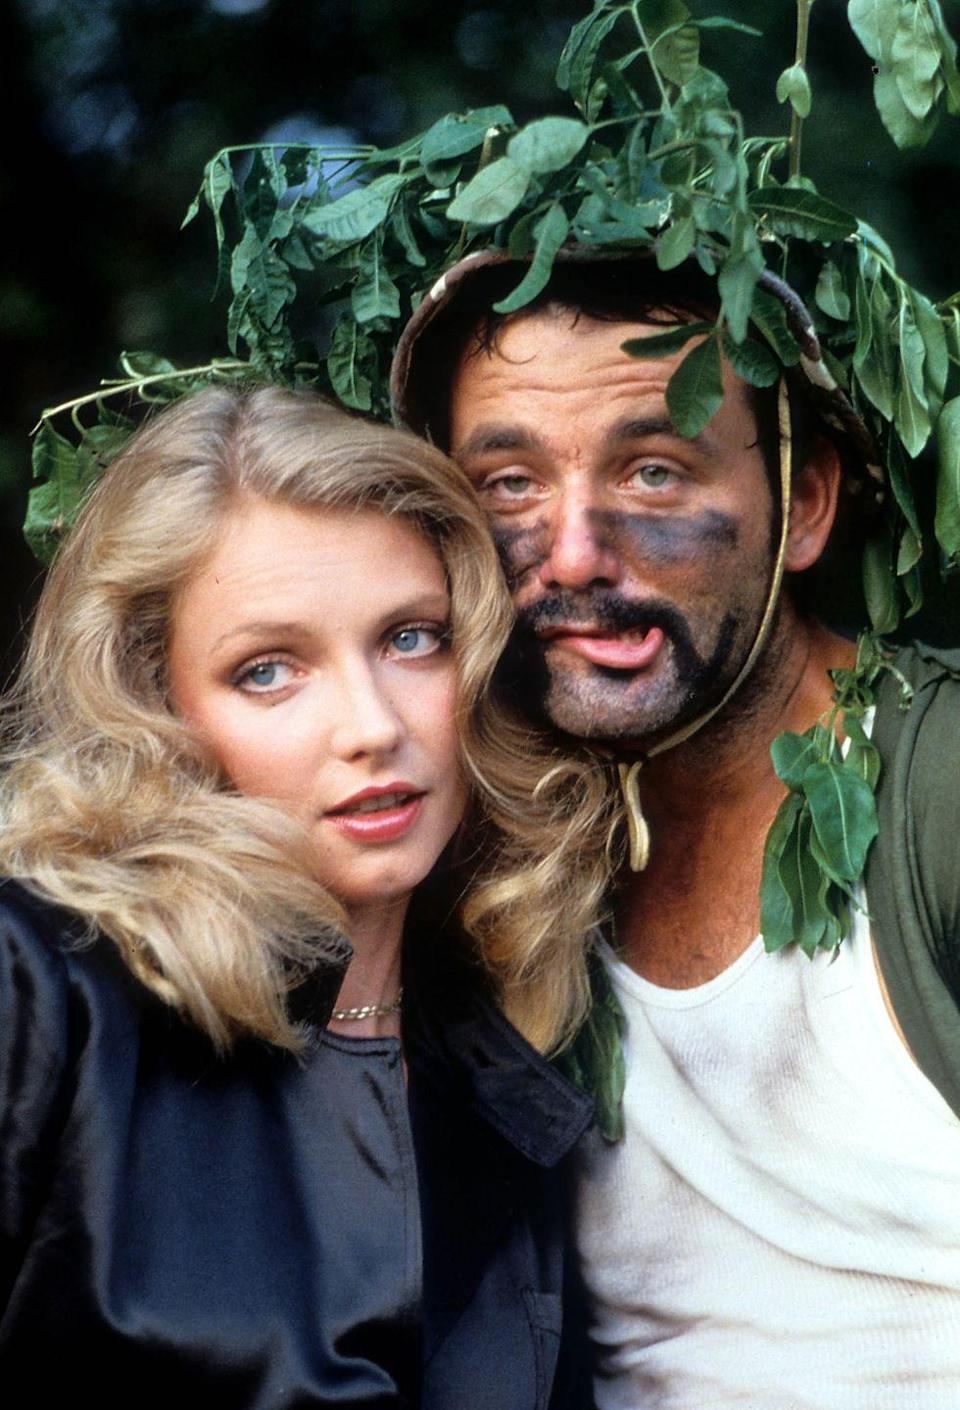 <p>Cindy Morgan and Bill Murray nestled behind a tree in a scene from the film <em>Caddyshack</em>, 1980.</p>